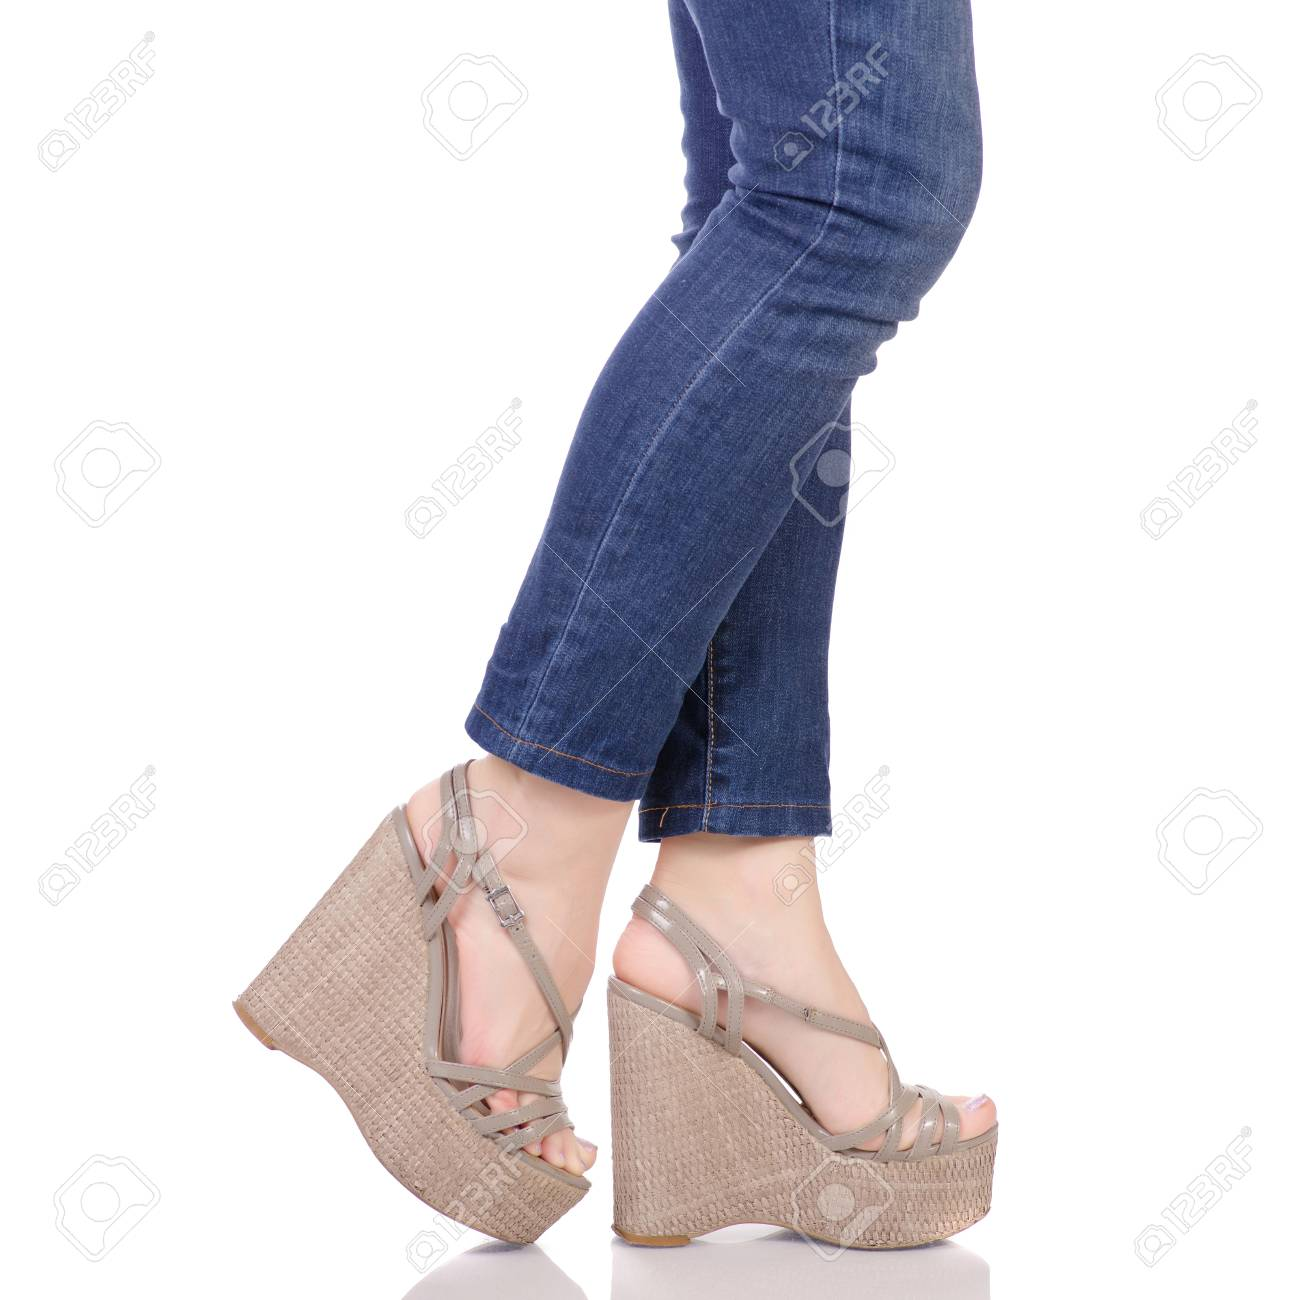 ee781c257 ... white background isolation. Female legs in jeans and gray sandals on a  wedge buy shop fashion beauty on a